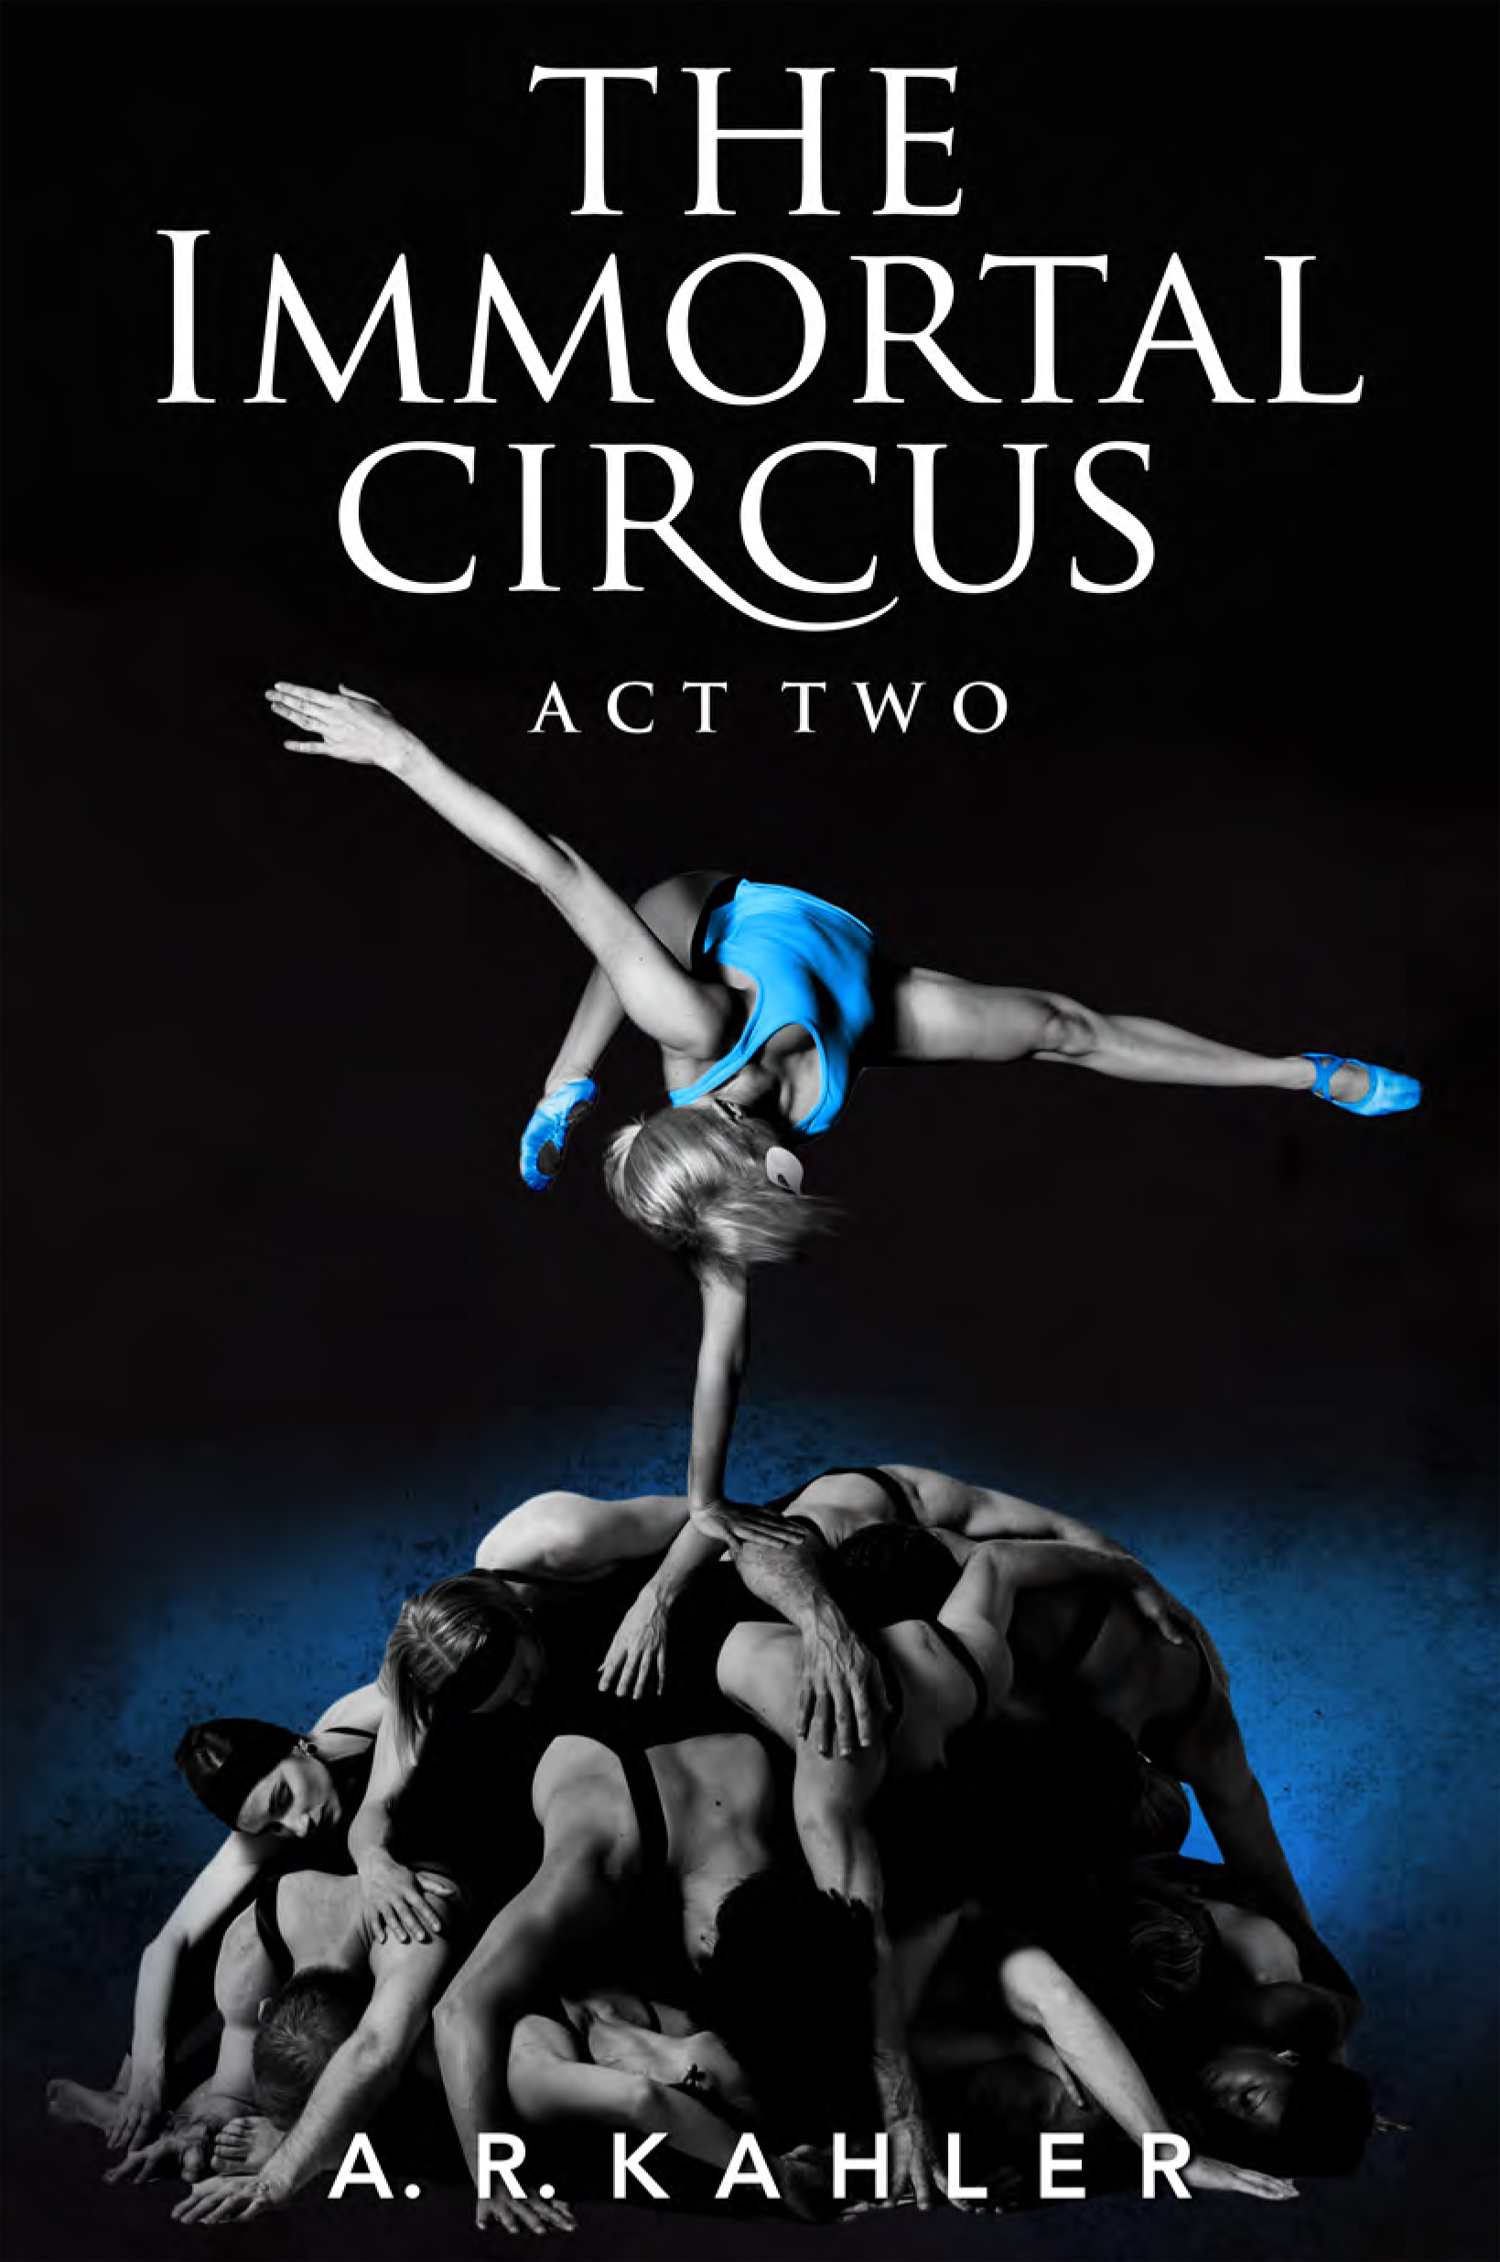 The Immortal Circus Act Two.jpg